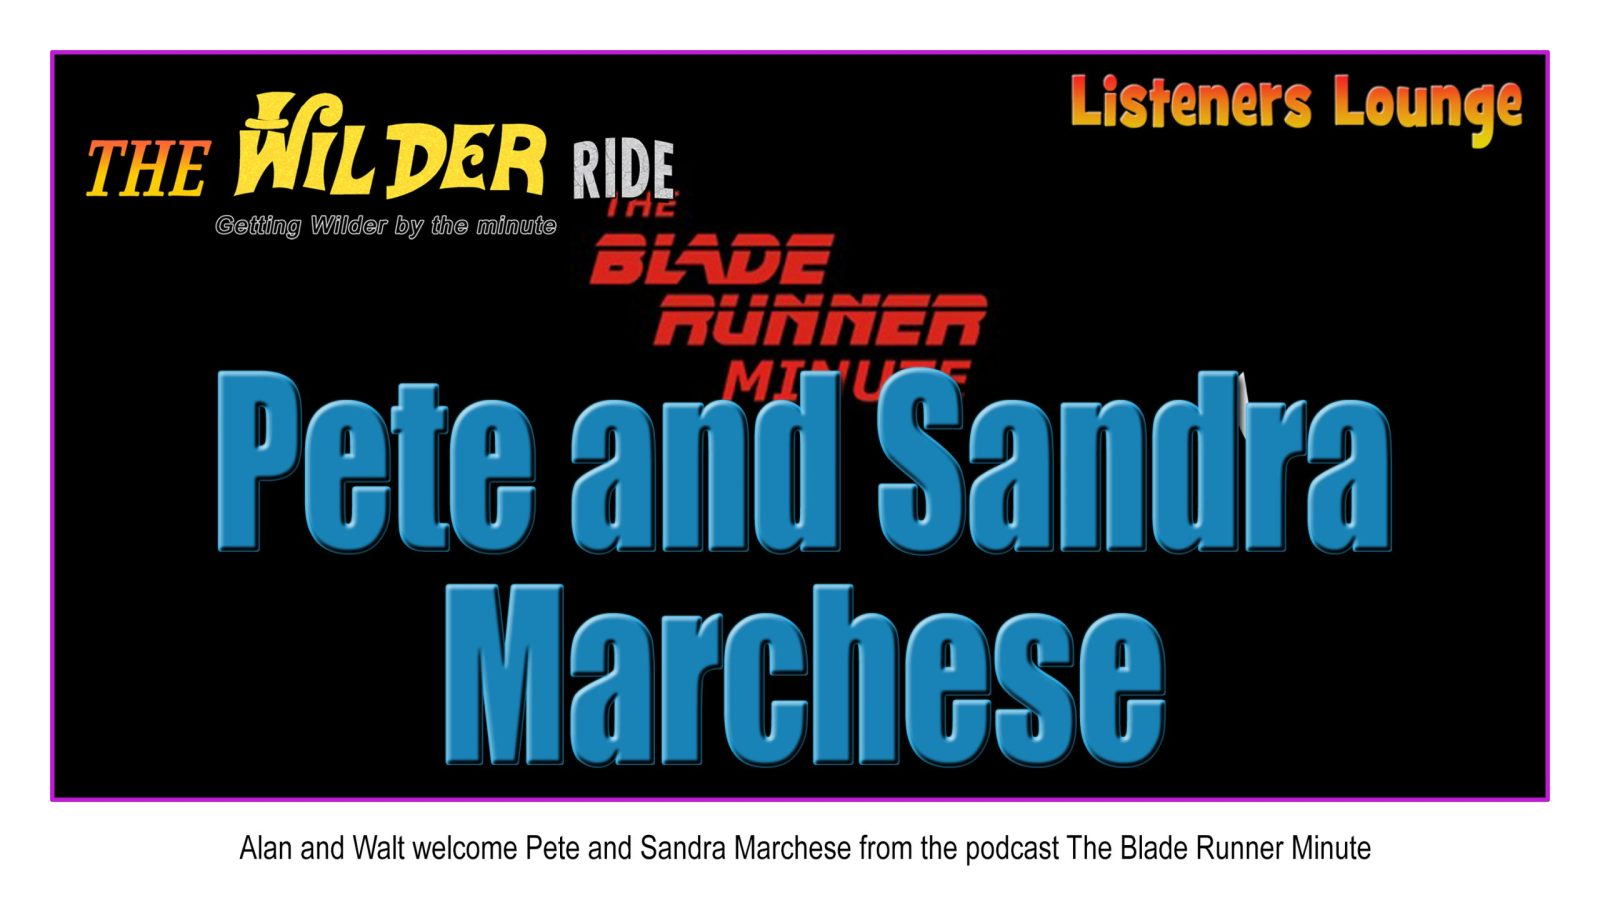 Pete and Sandra Marchese